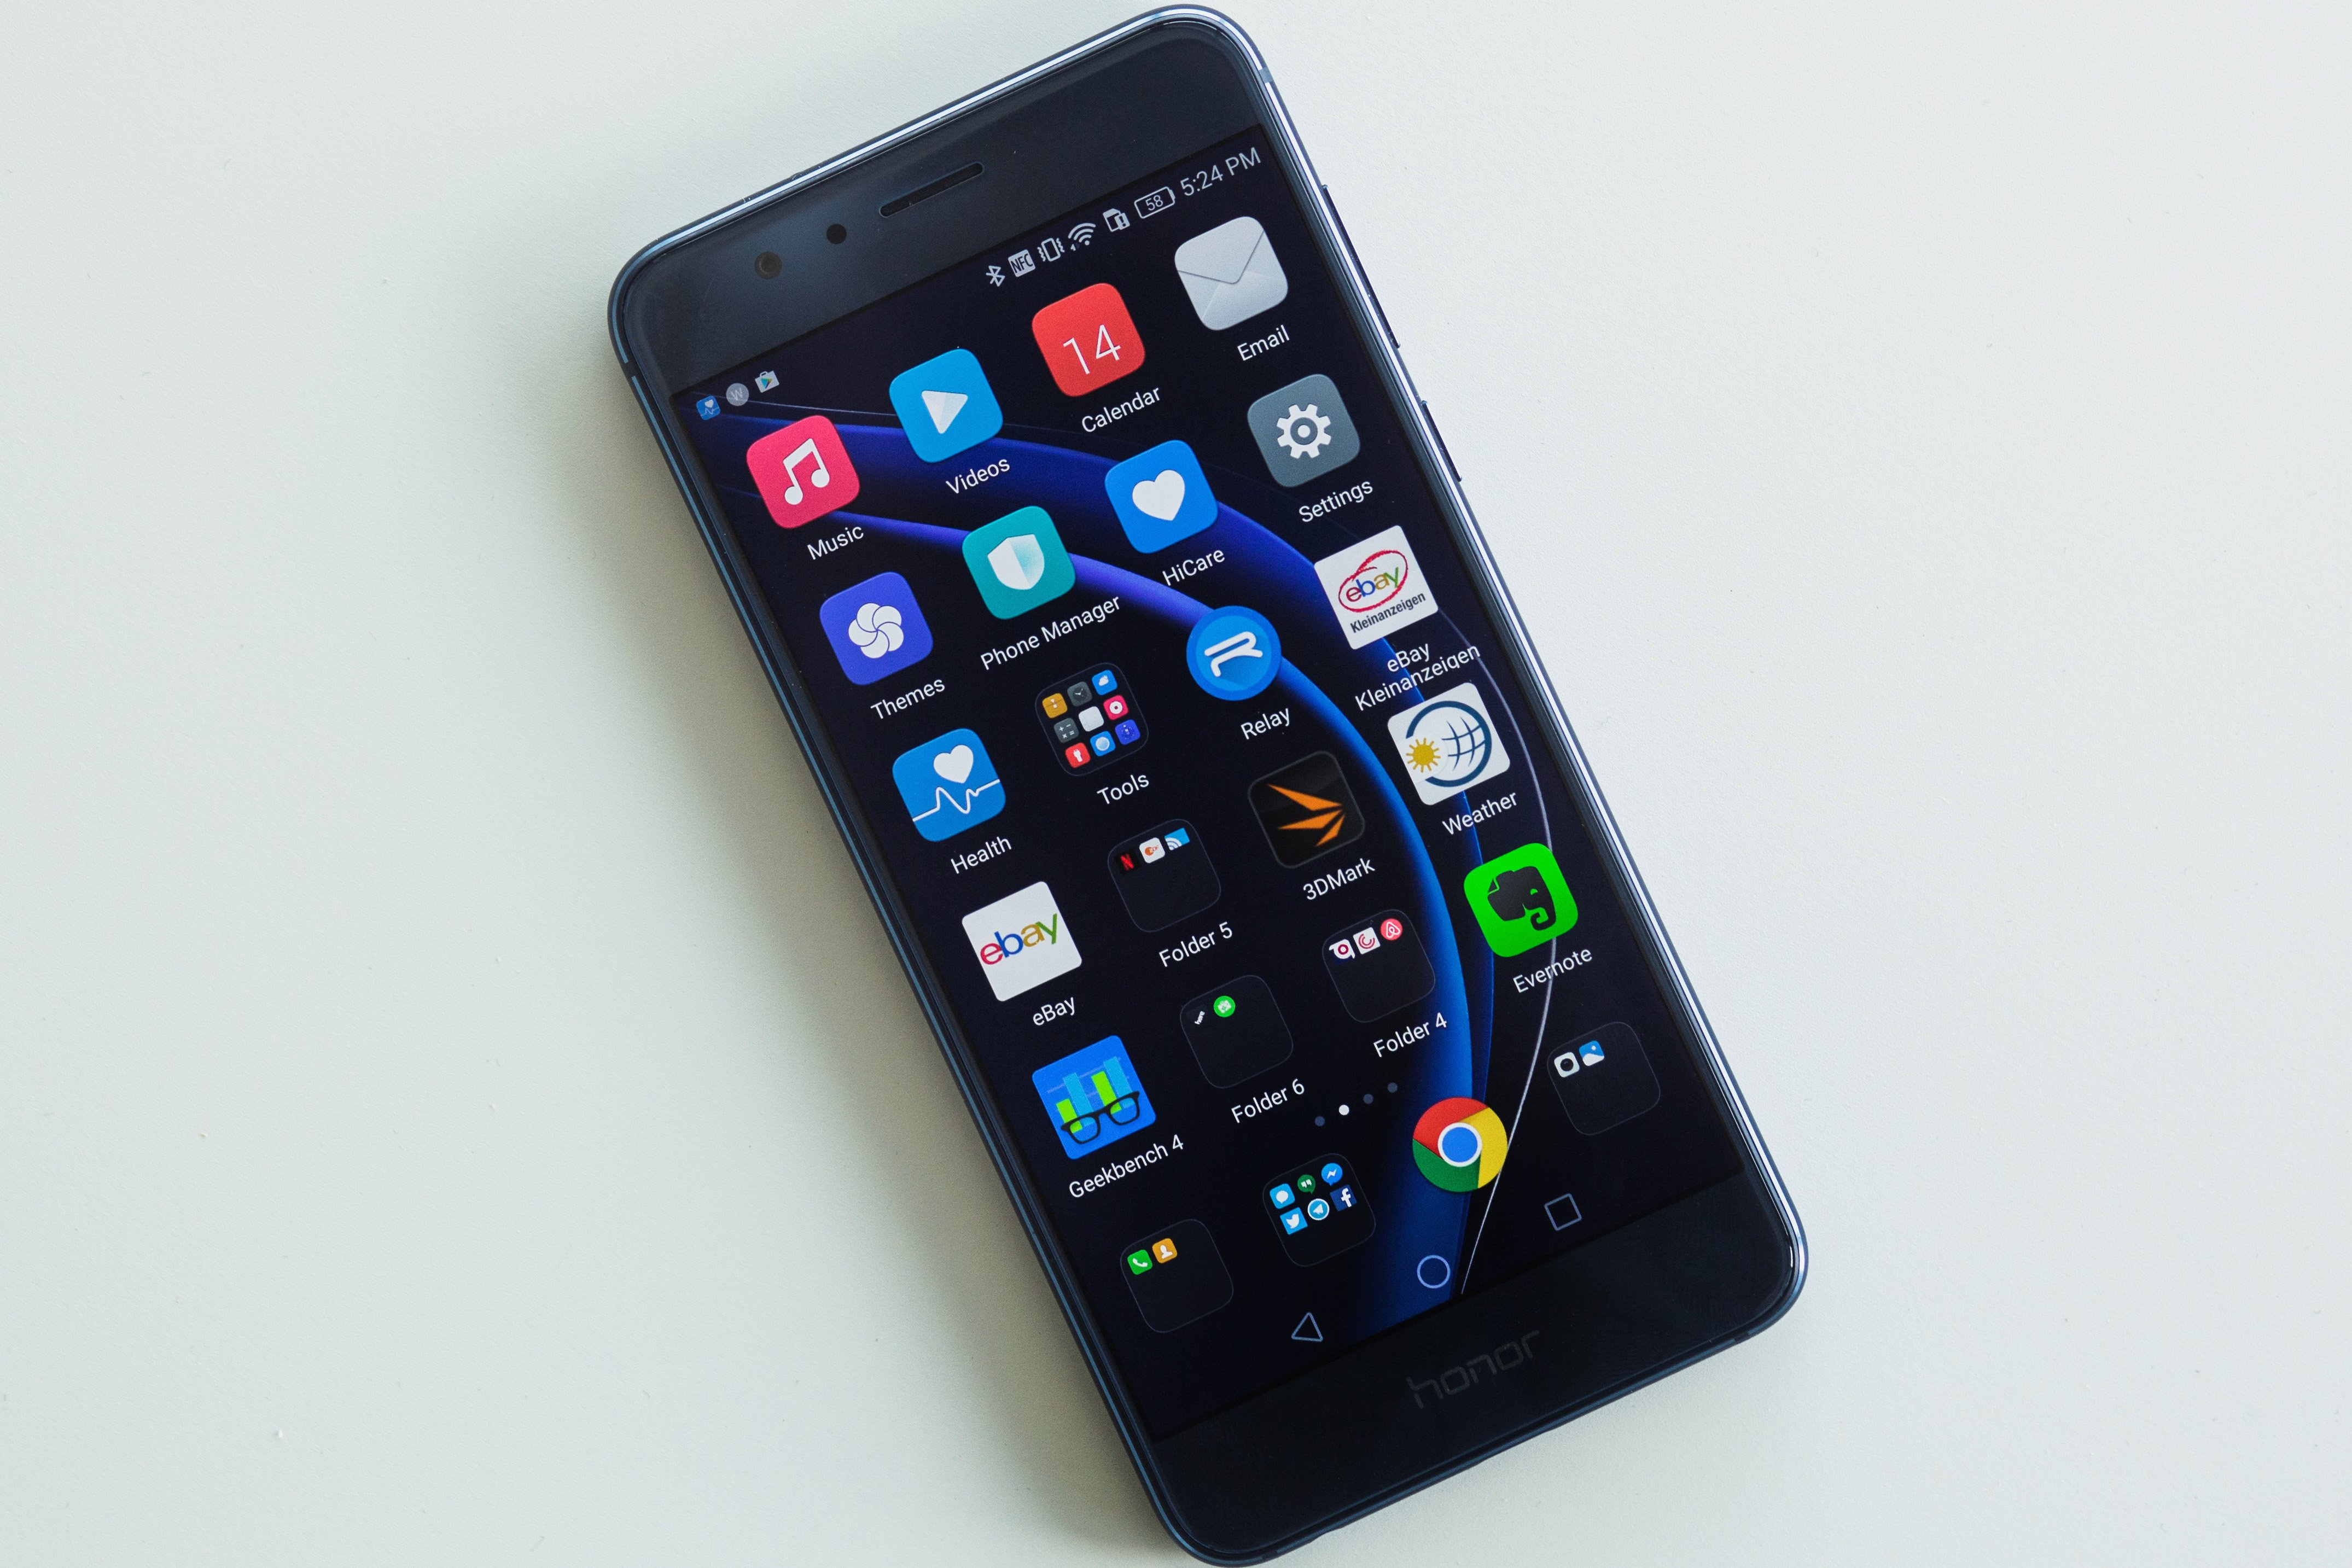 How to Update Honor 8 to Android Nougat Manually - Android